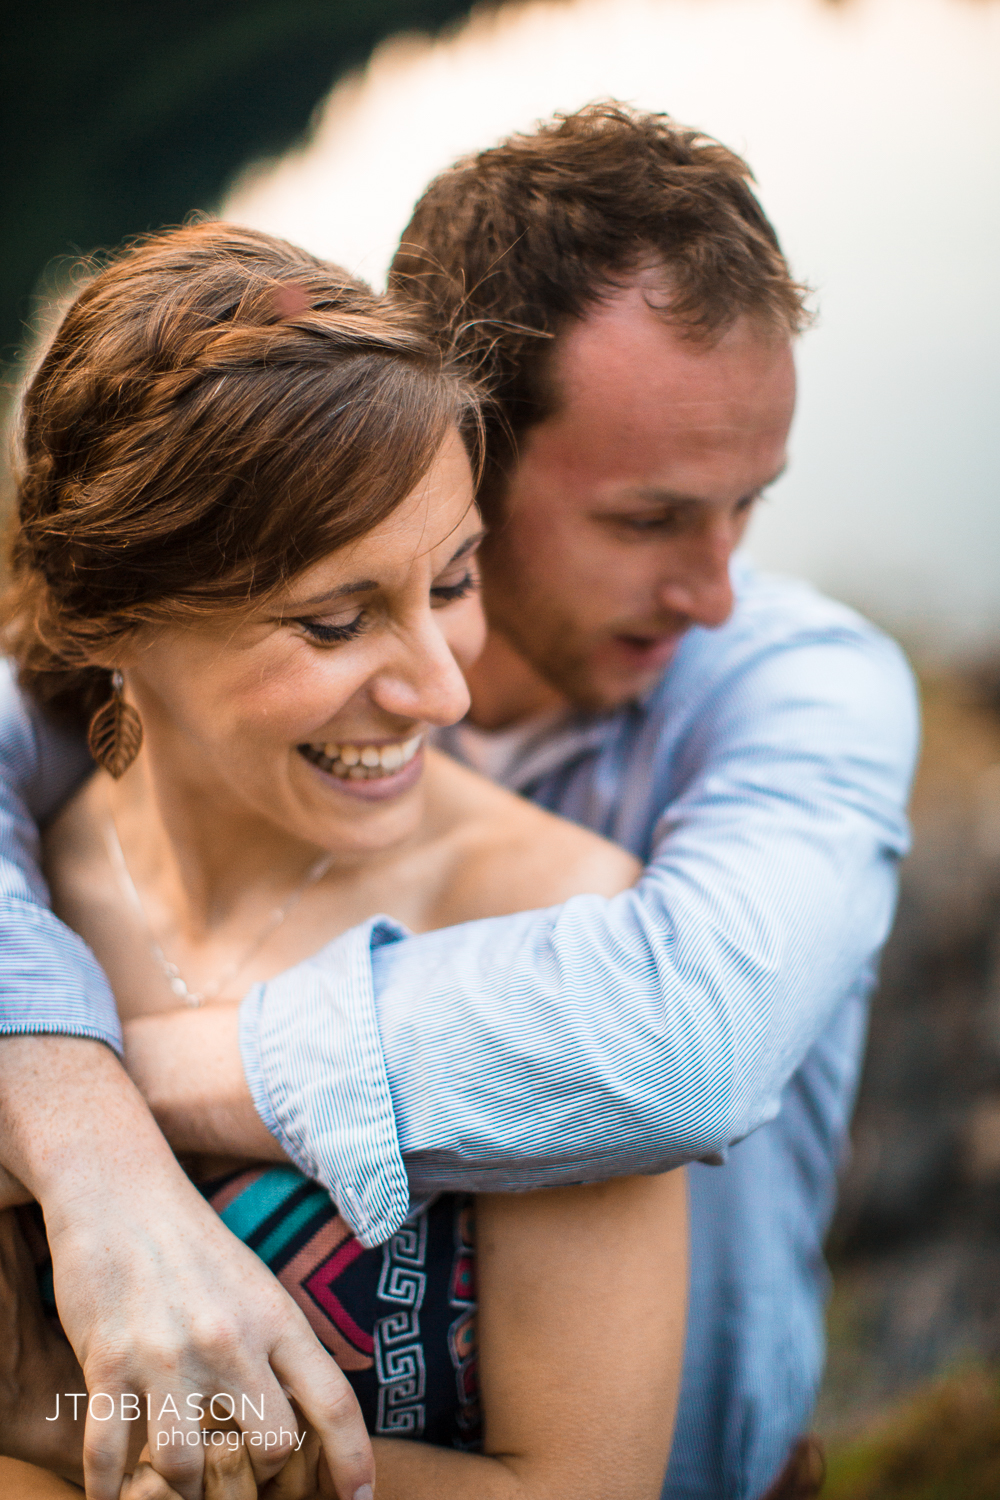 32 - Woman smiles with man Lake 22 Engagement photo